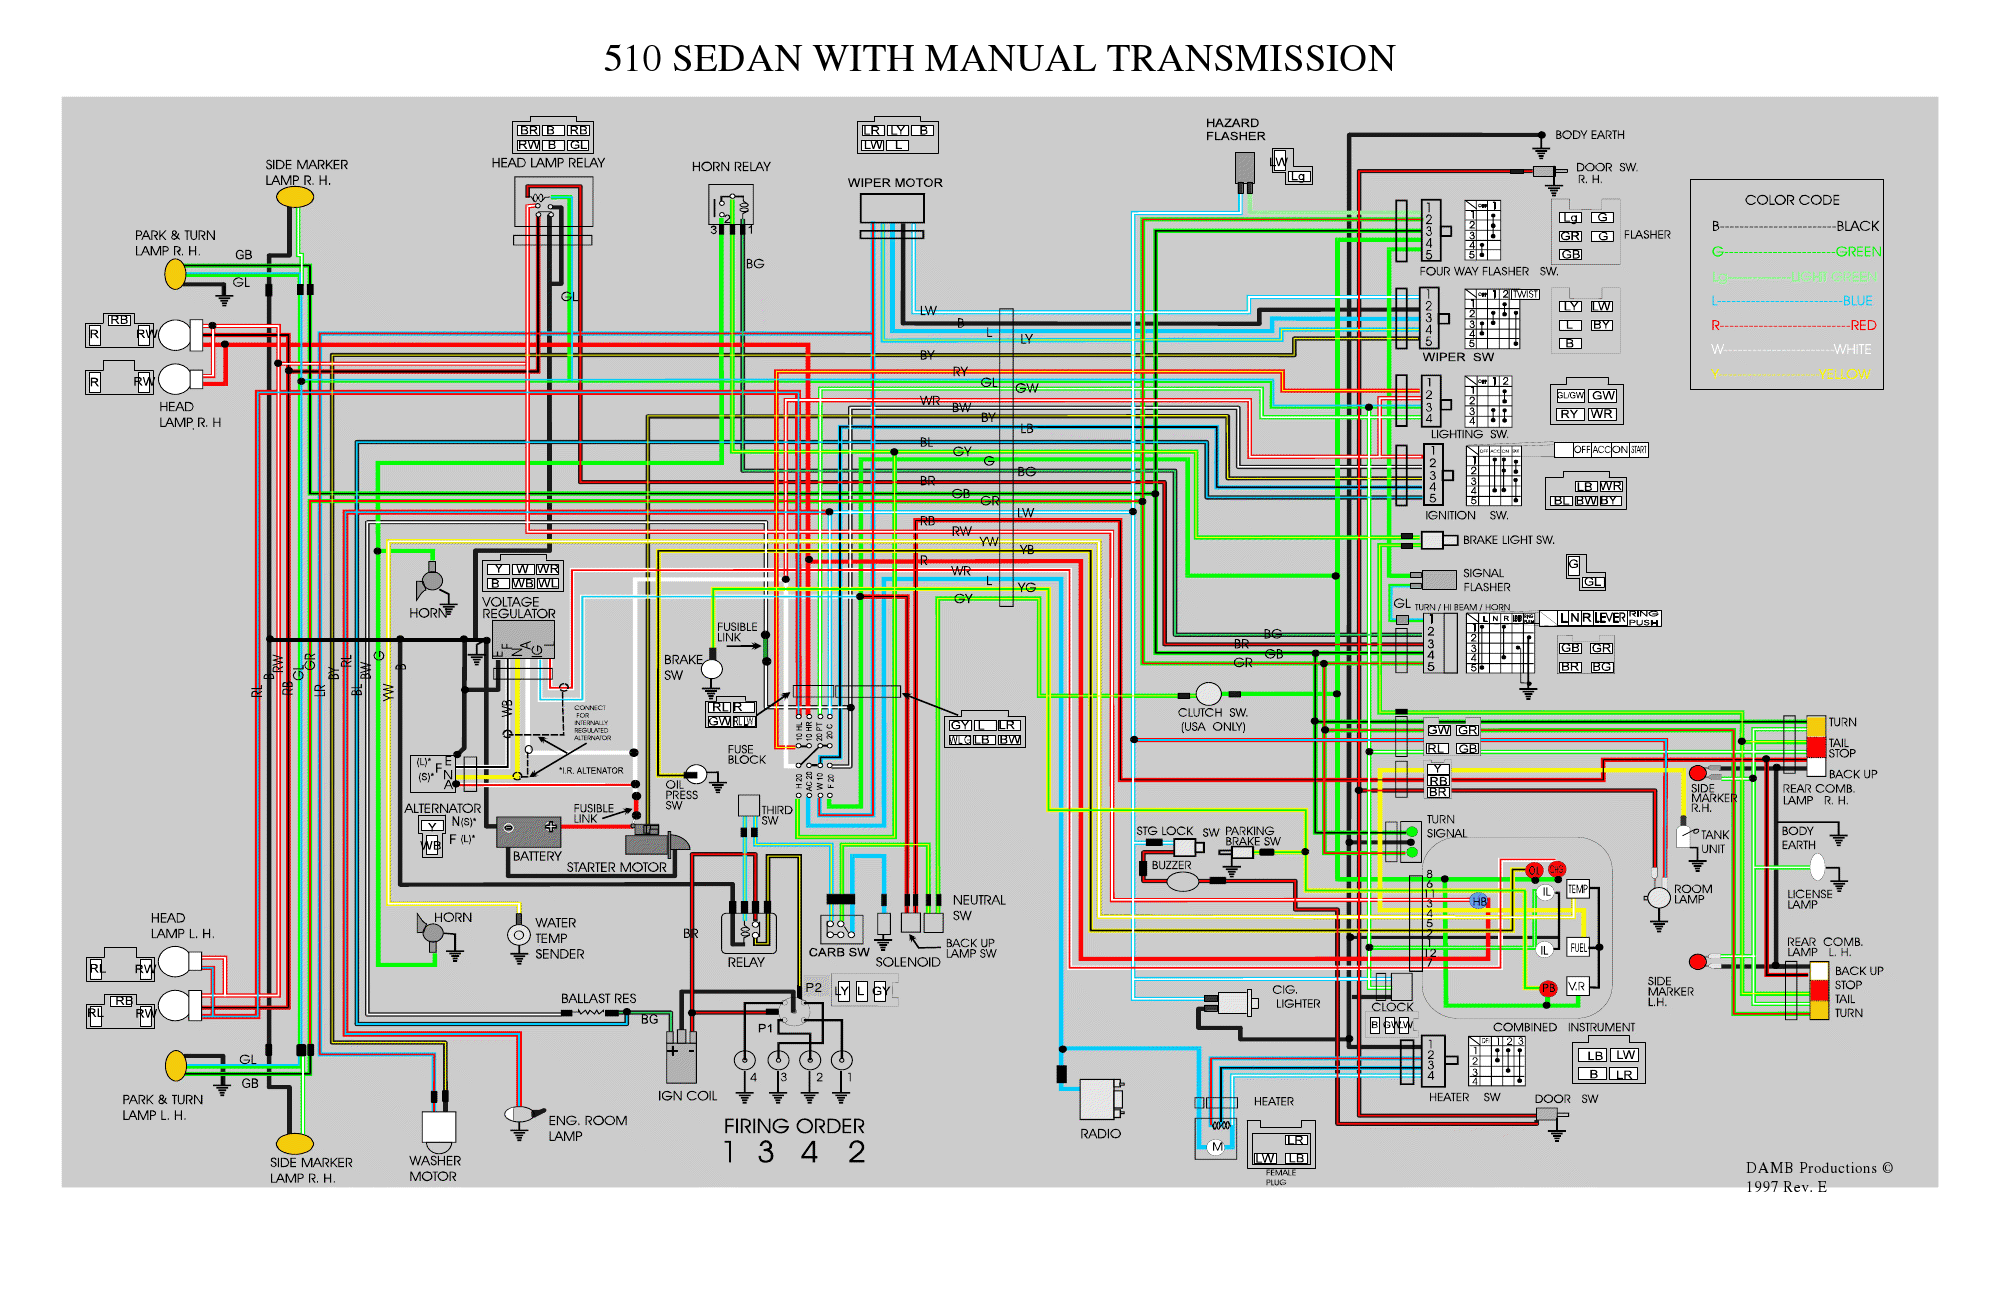 80 280zx harness pinout diagram datsun 1200 wiring diagram wiring diagram  datsun 1200 wiring diagram wiring diagram